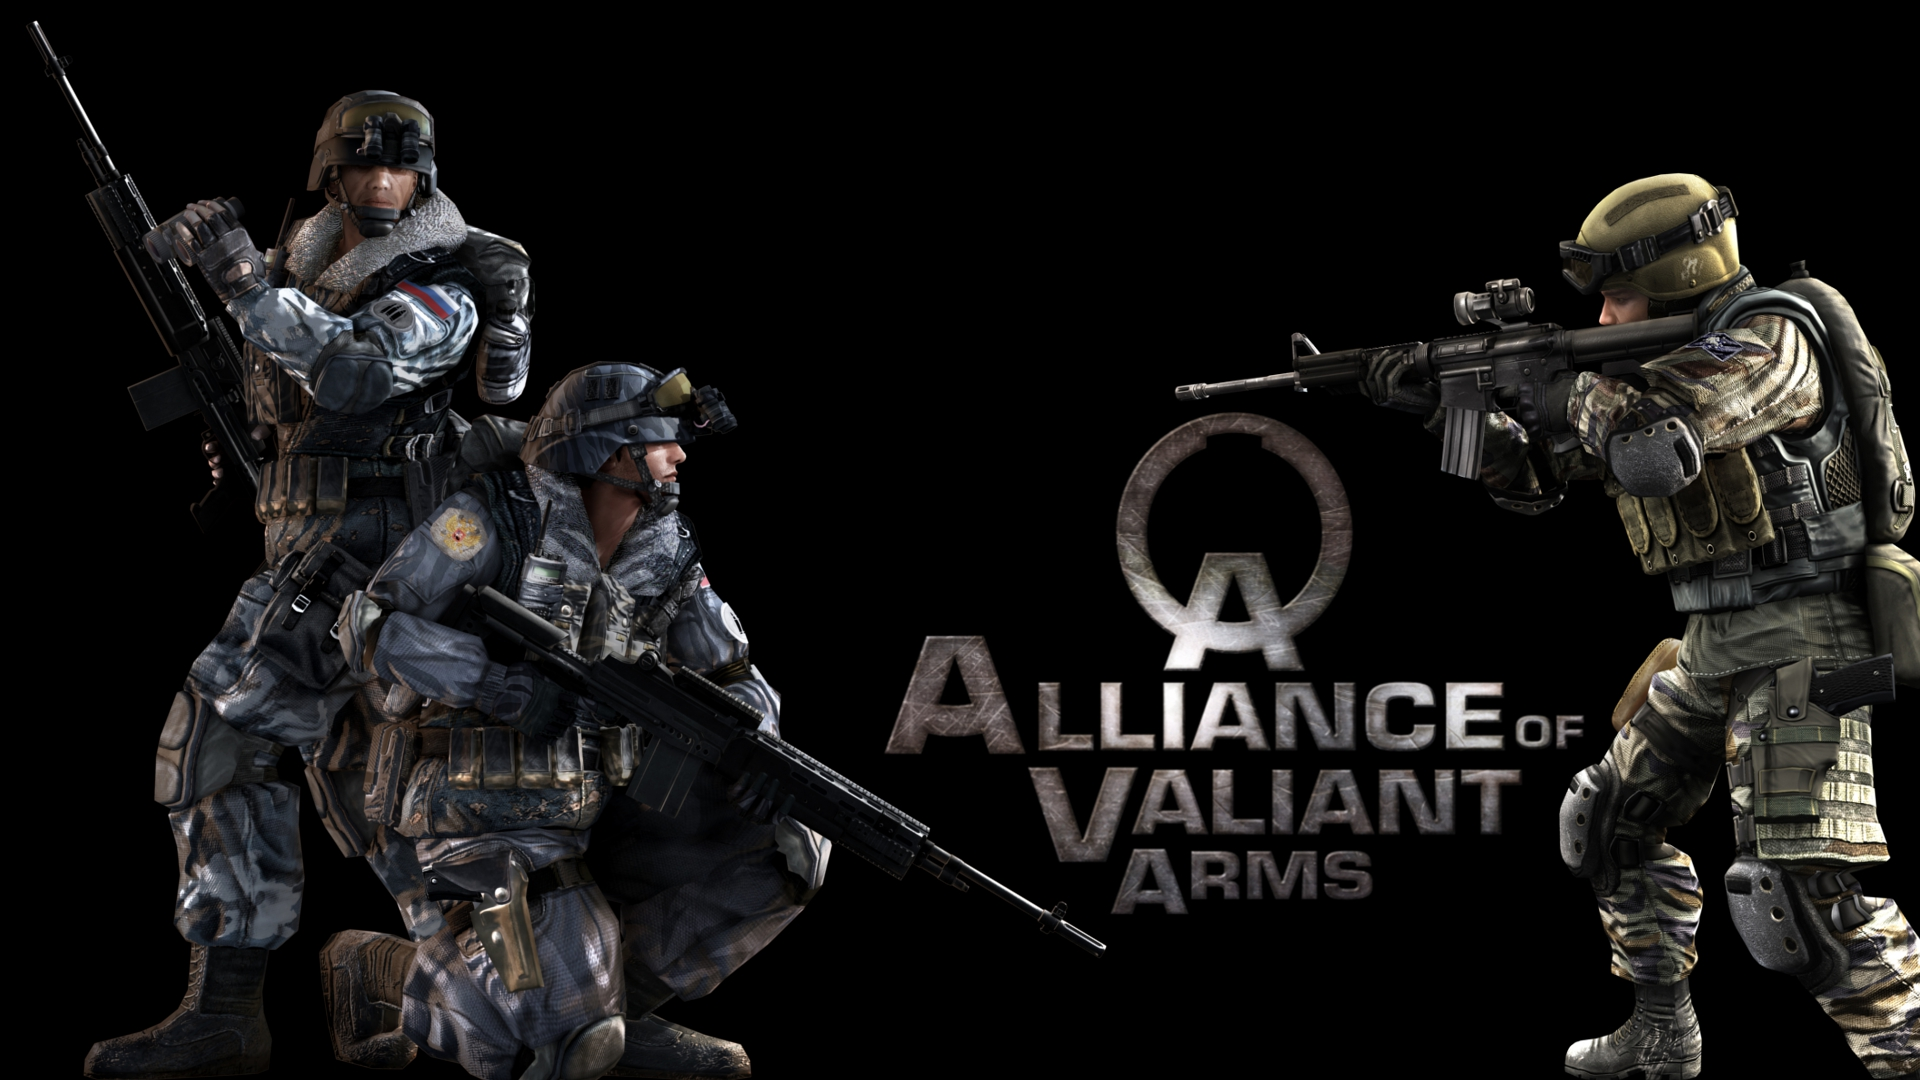 Alliance of Valiant Arms (AVA) Hack Free Download